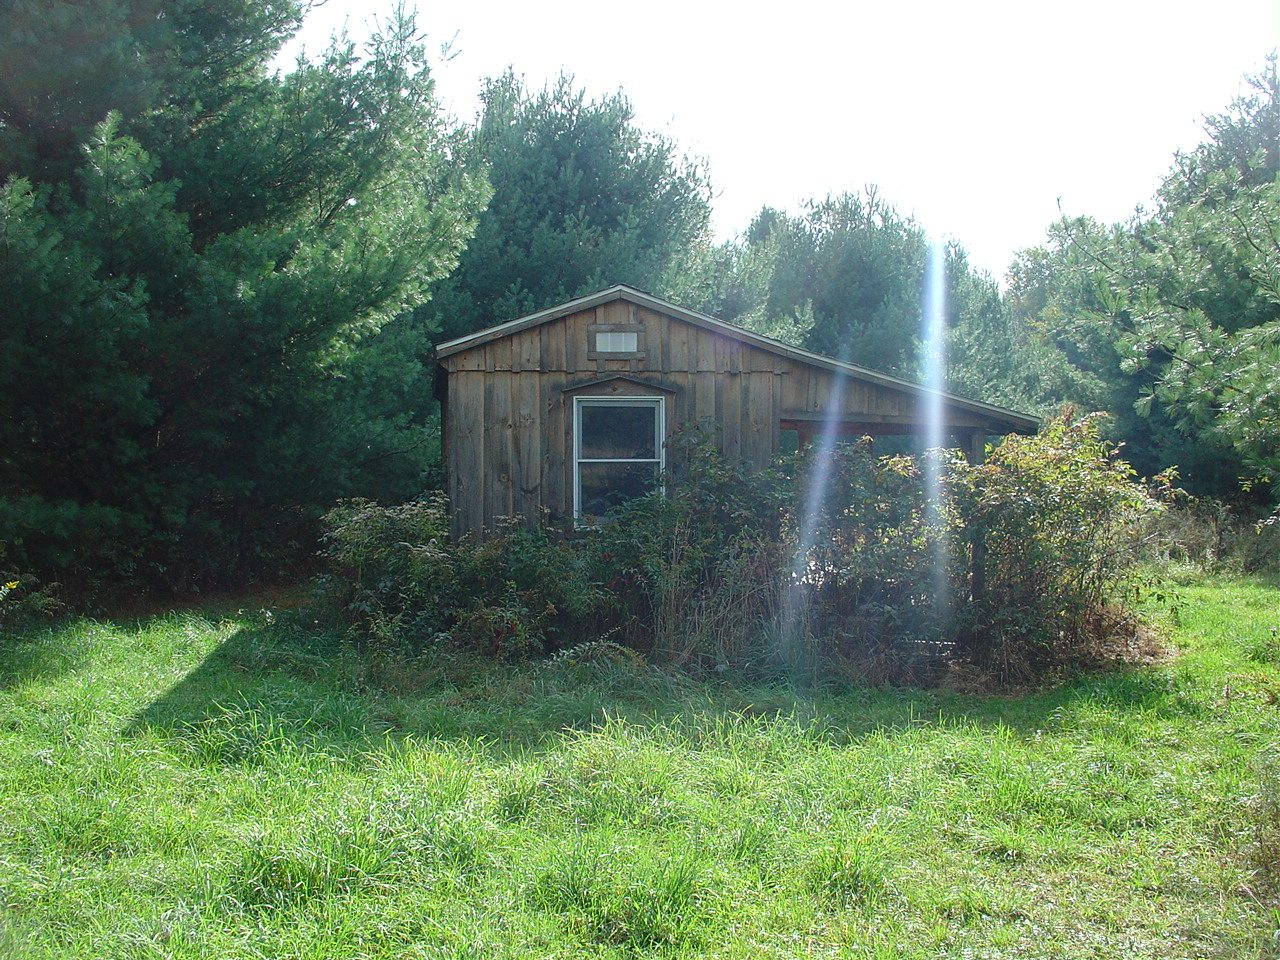 1908 Acres With Timber Pole Barn Cabin And Beaver Pond In The Town Of Harmony